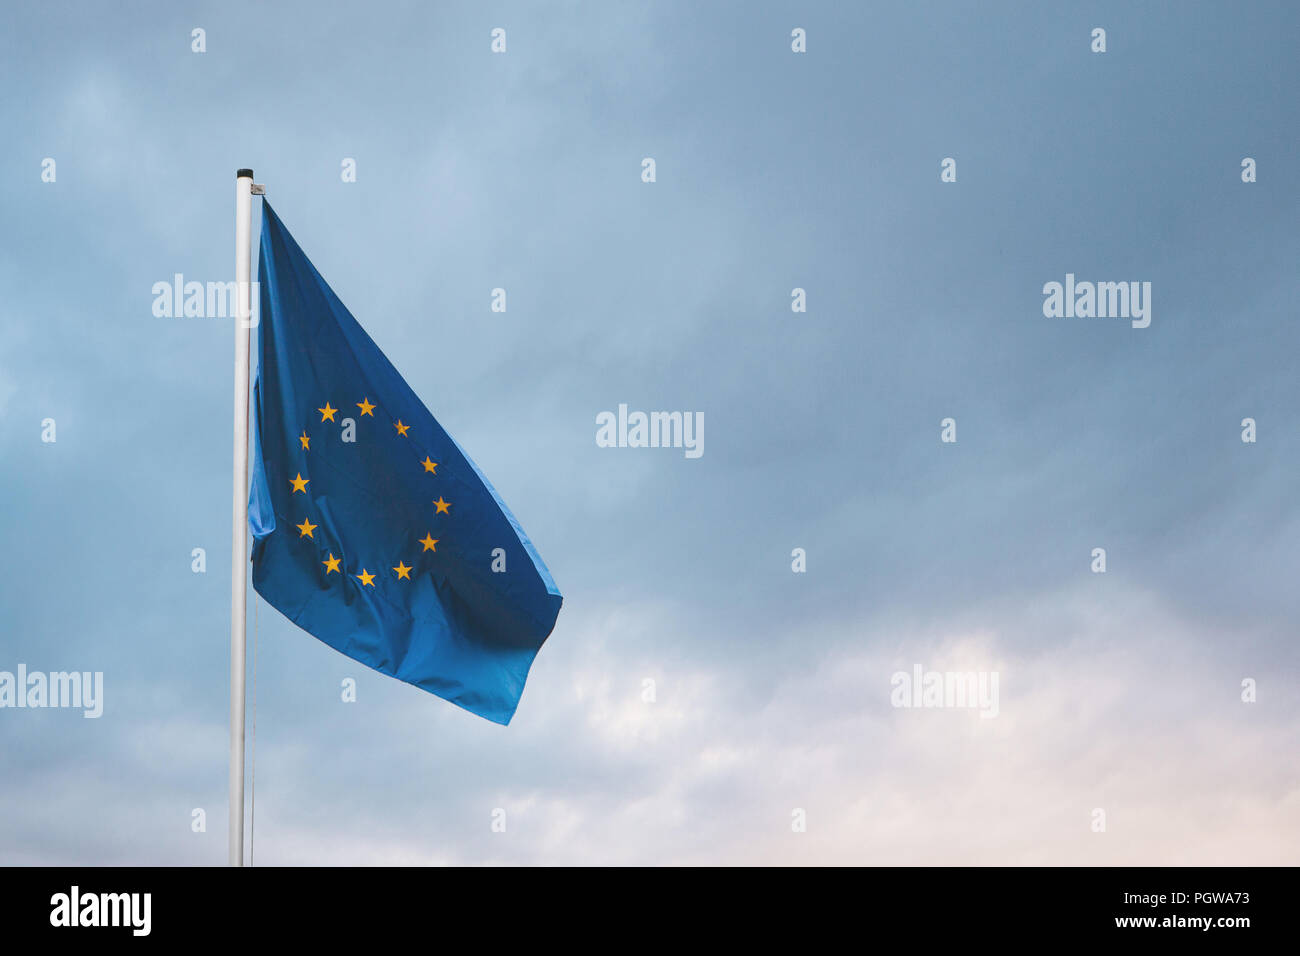 Flag of the European Union on the flagpole against the backdrop of the dramatic sky. - Stock Image